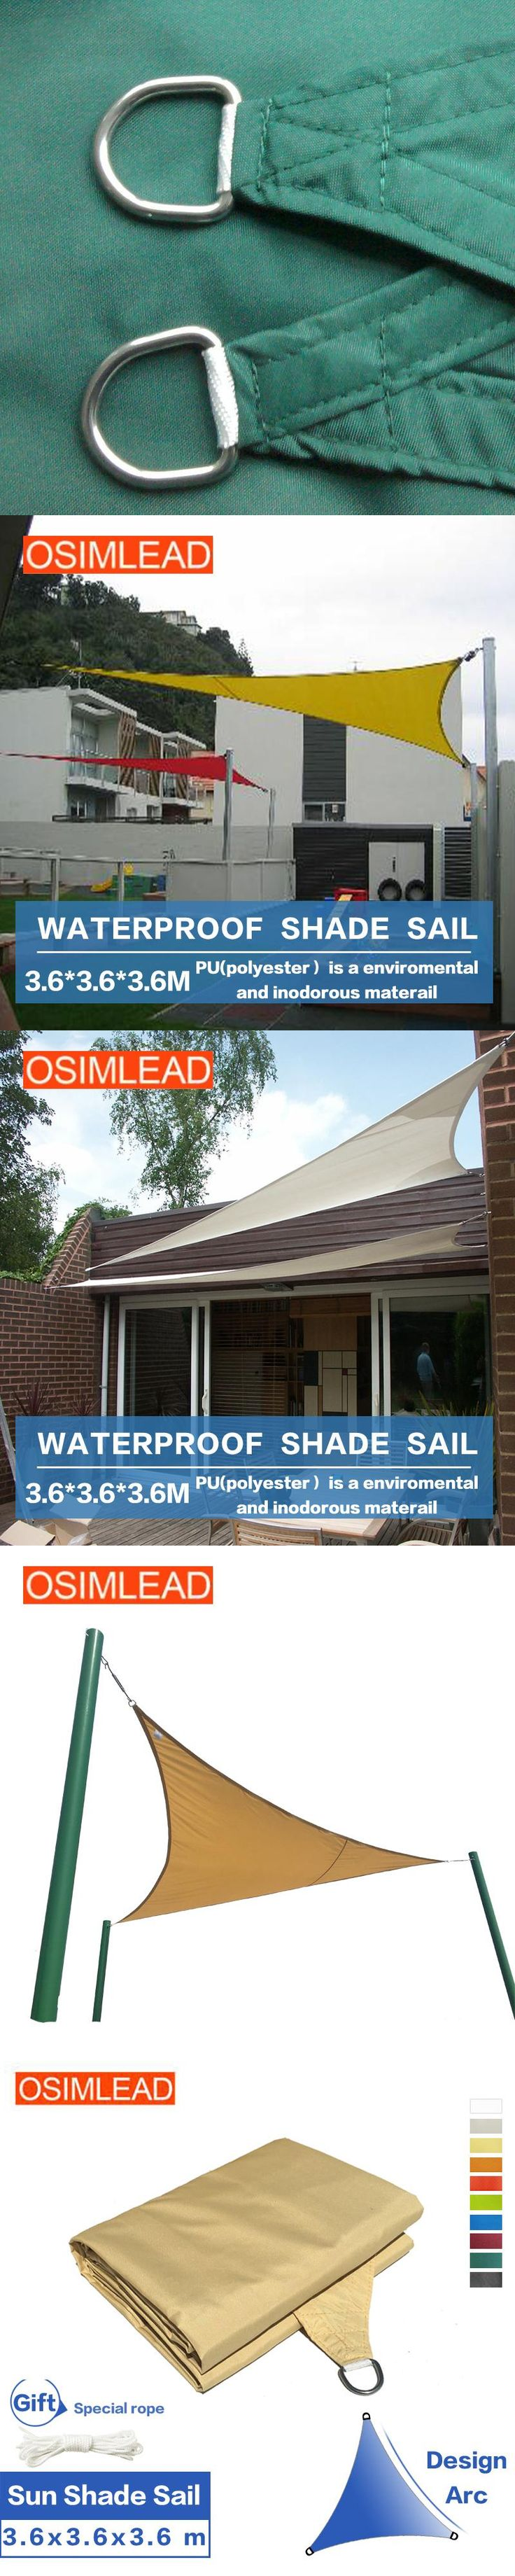 OSIMLEAD 3.6*3.6*3.6m waterproof sun shade sail - RECTANGLE CANOPY COVER - OUTDOOR PATIO AWNING 12 * 12 * 12